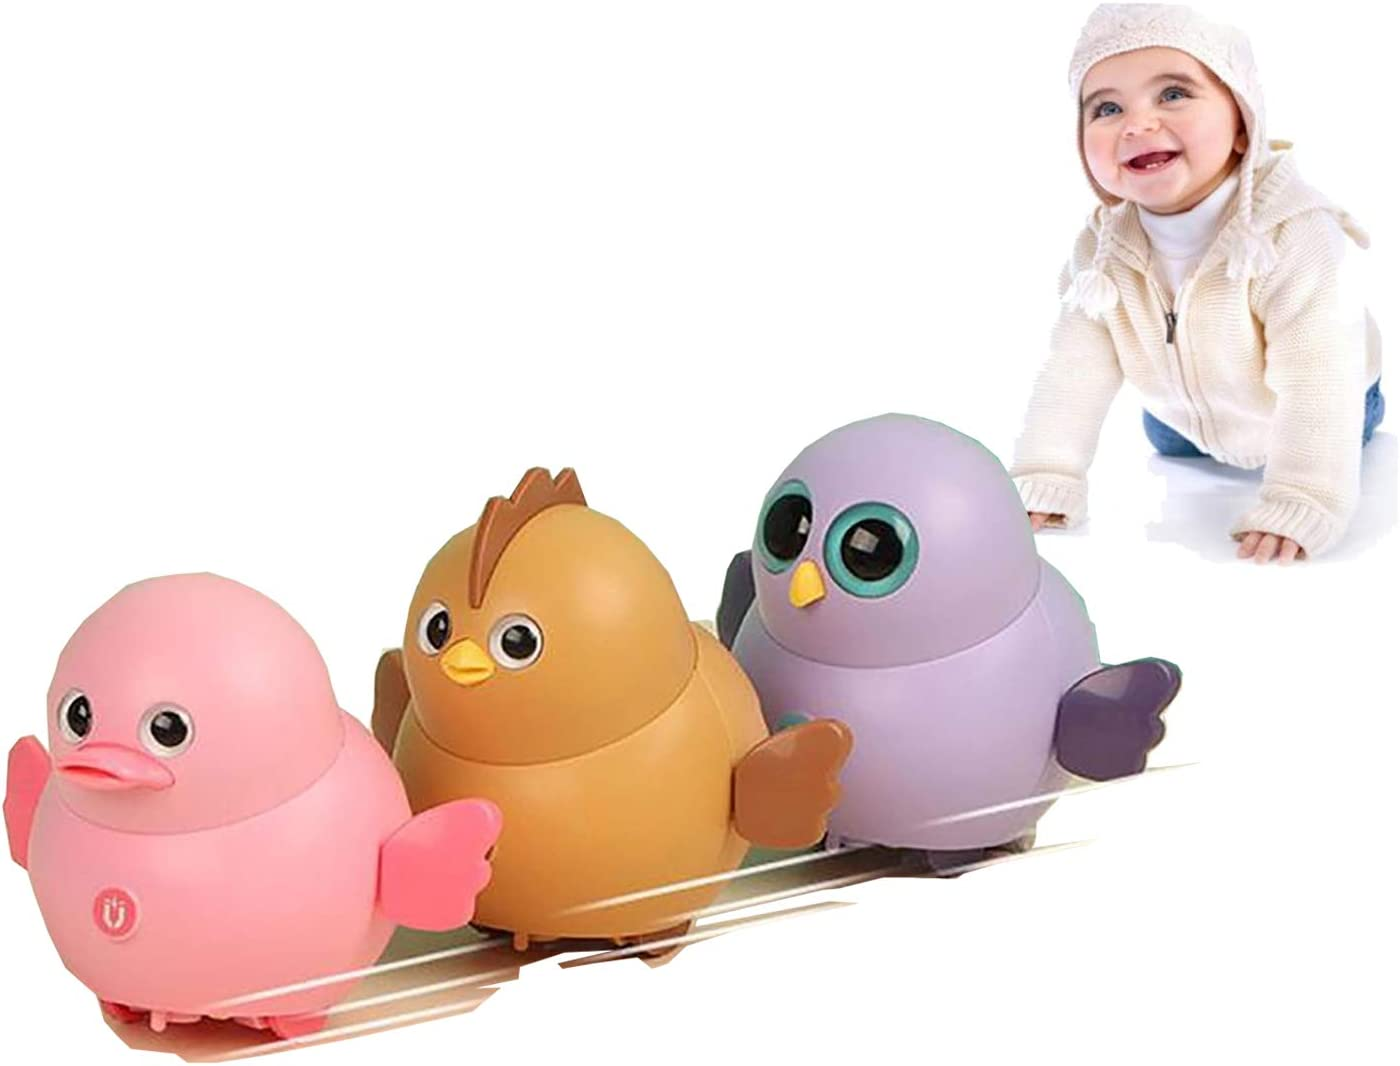 sesil Electric Magnetic Swinging Chicken Toy Animal Squad That Can Walk in Line and Turn in Circles at Fixed Points Eagle1